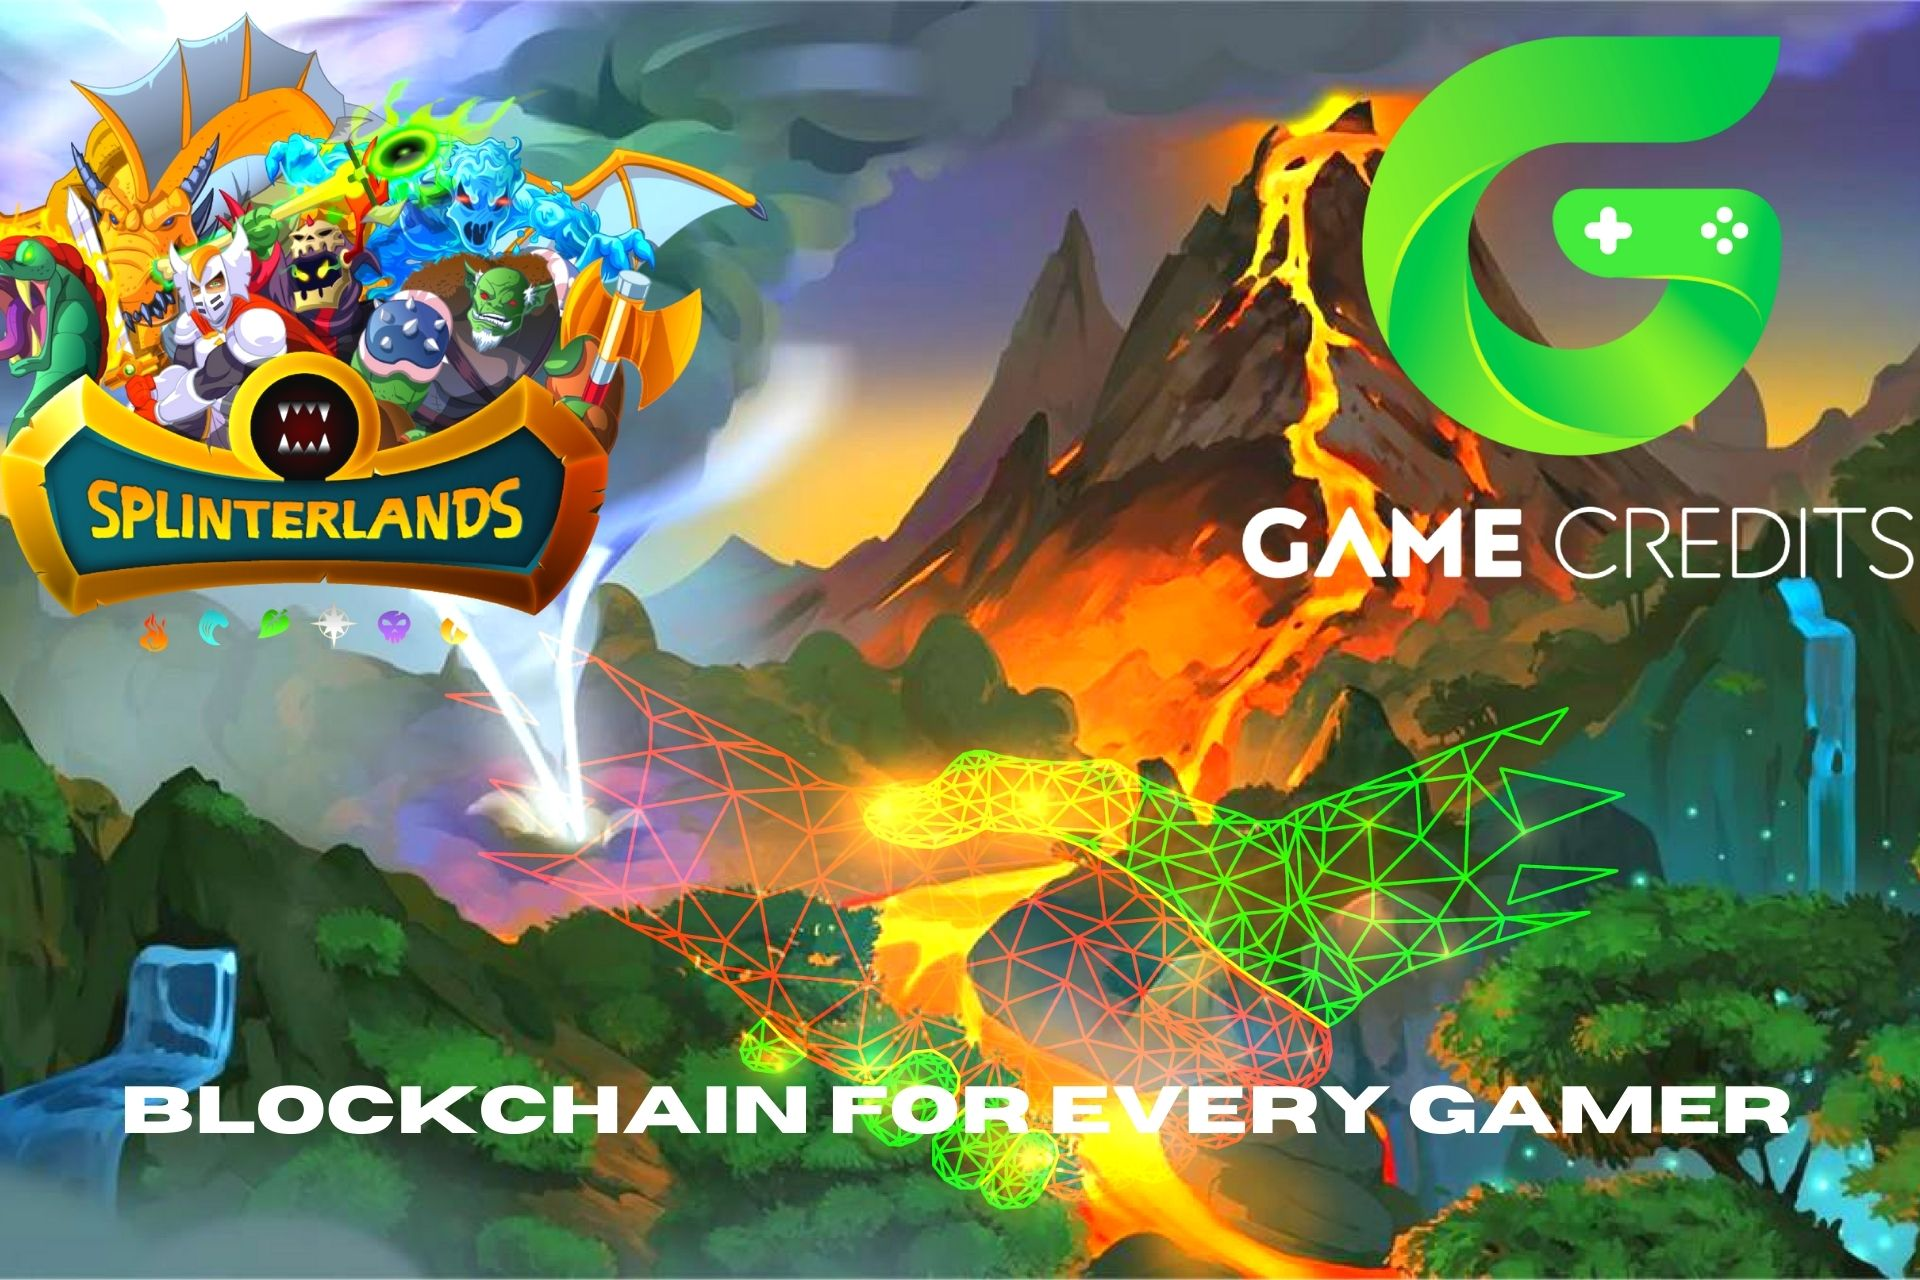 Crypto Online Games: Game Credits And Splinterlands Partnership